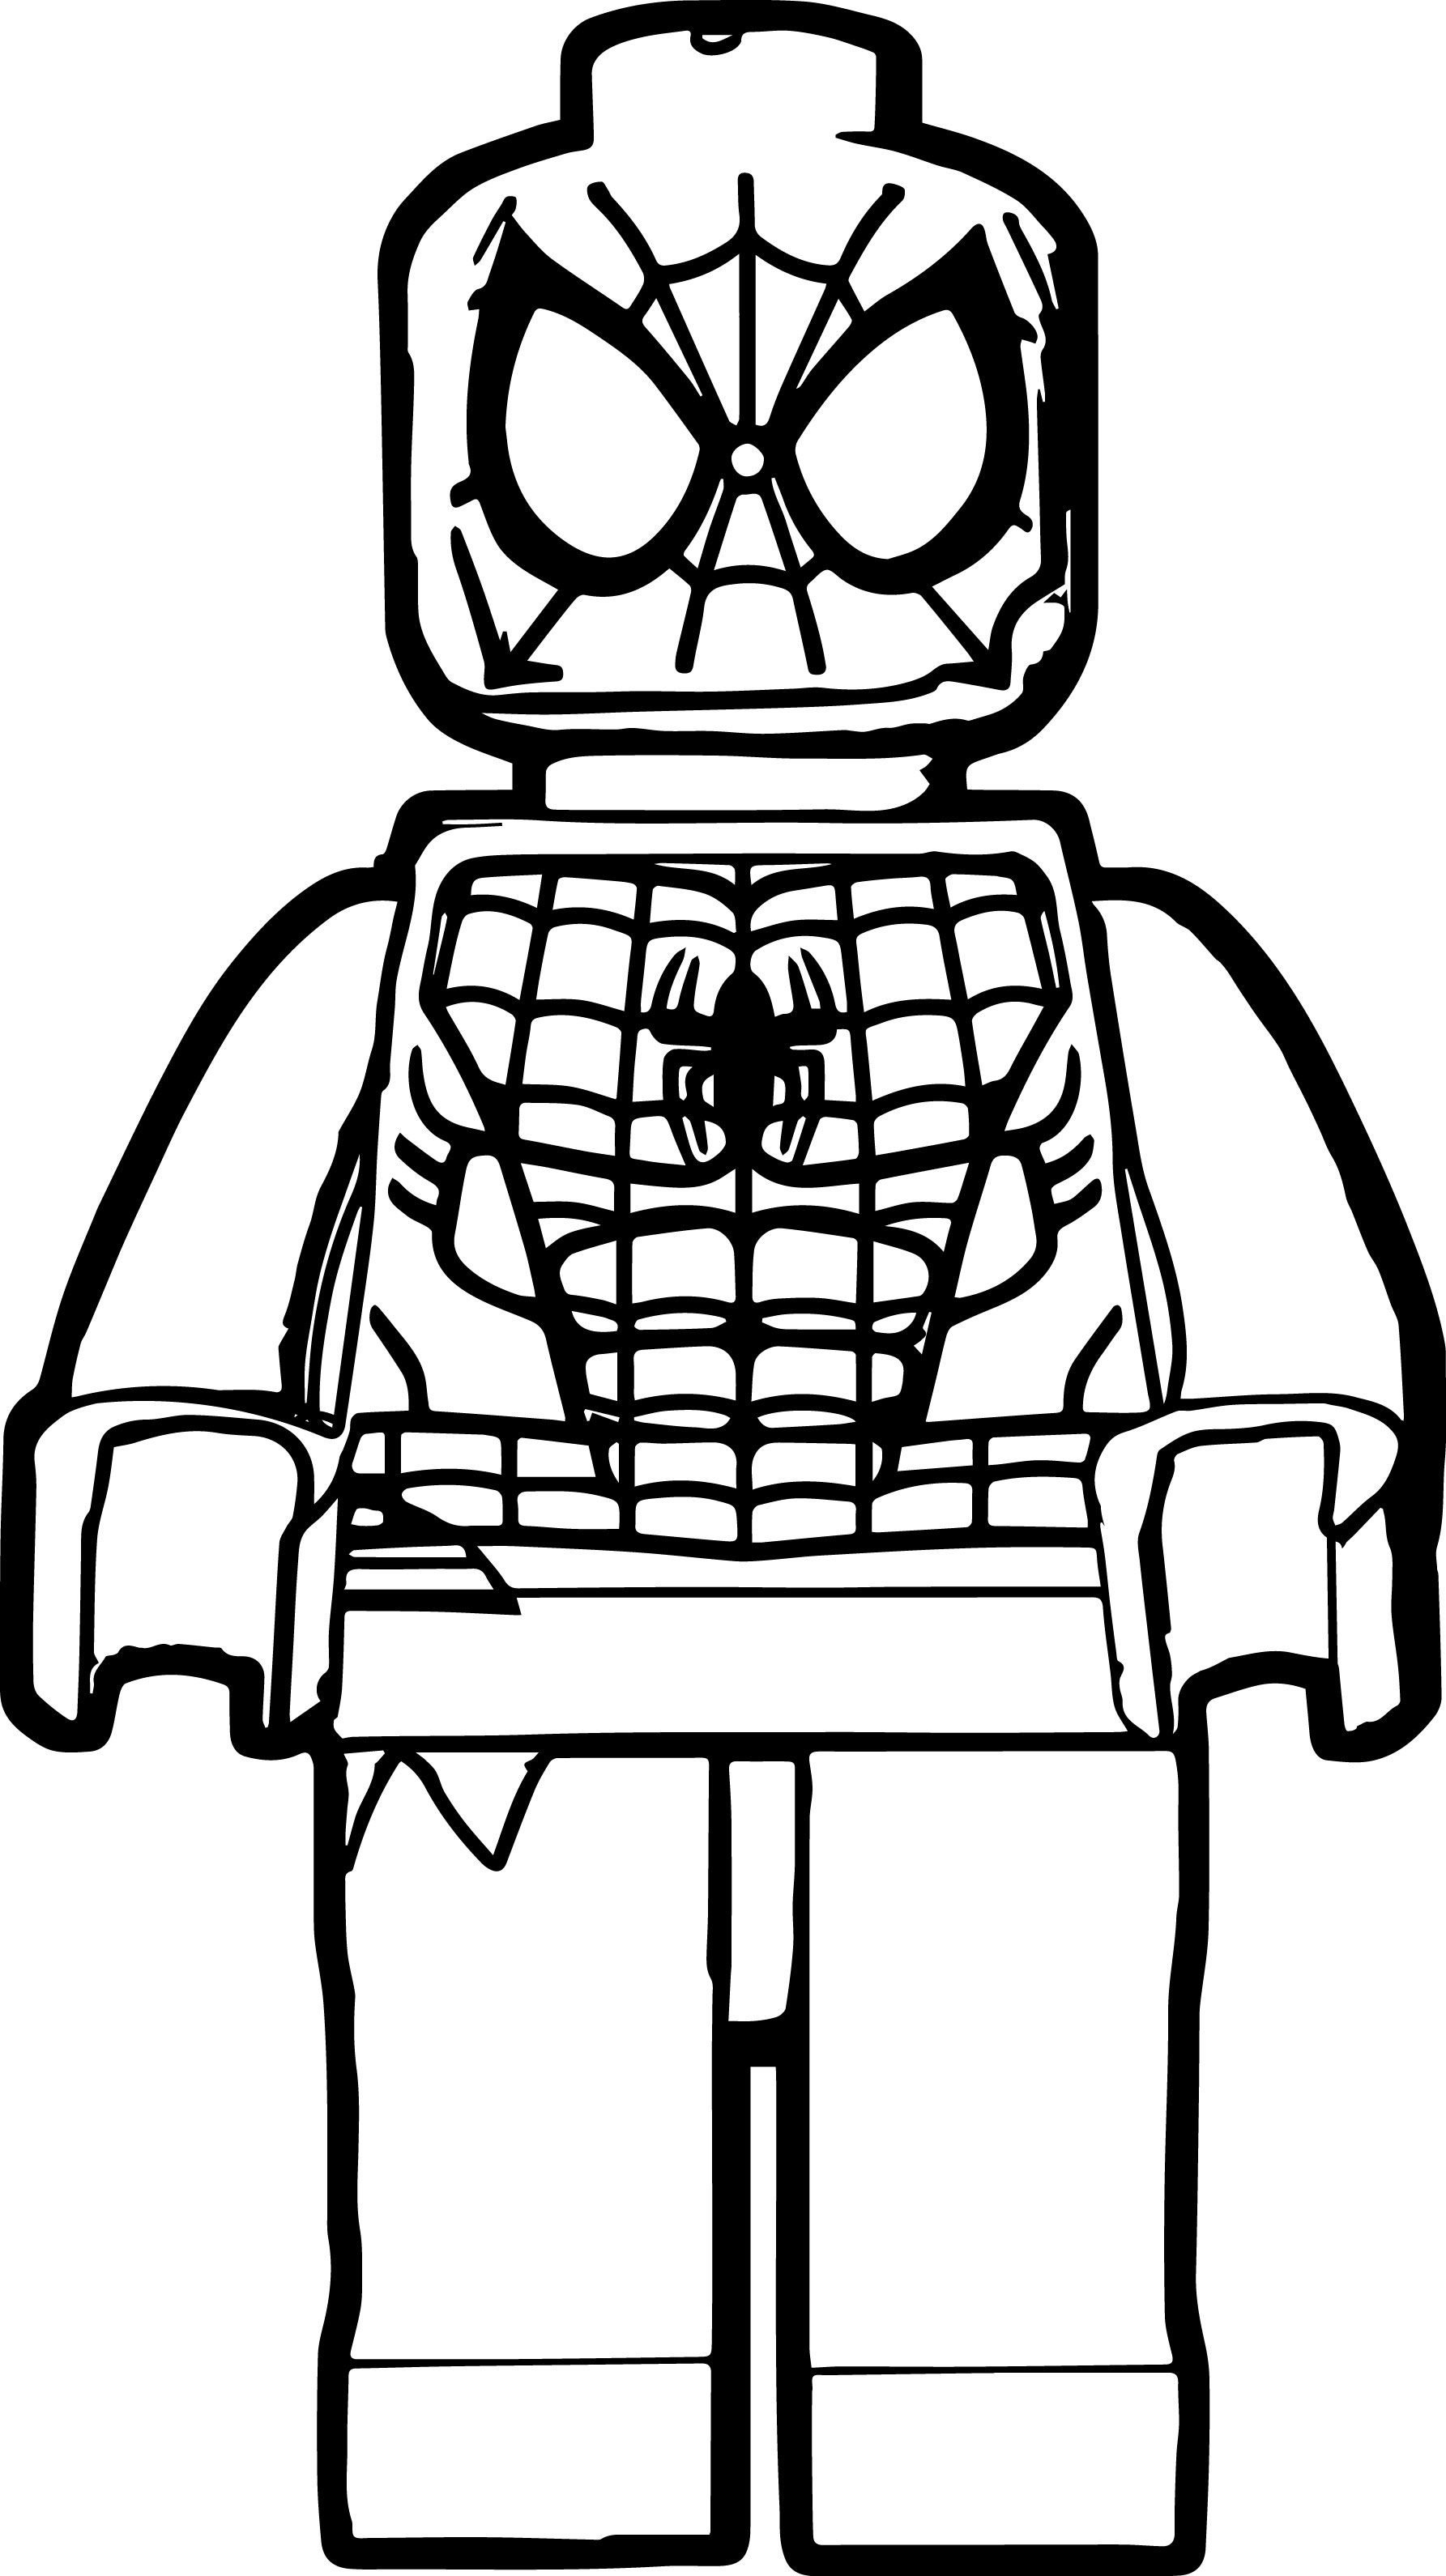 Spider Man Lego Coloring Page Lego Coloring Pages Spiderman Coloring Lego Coloring